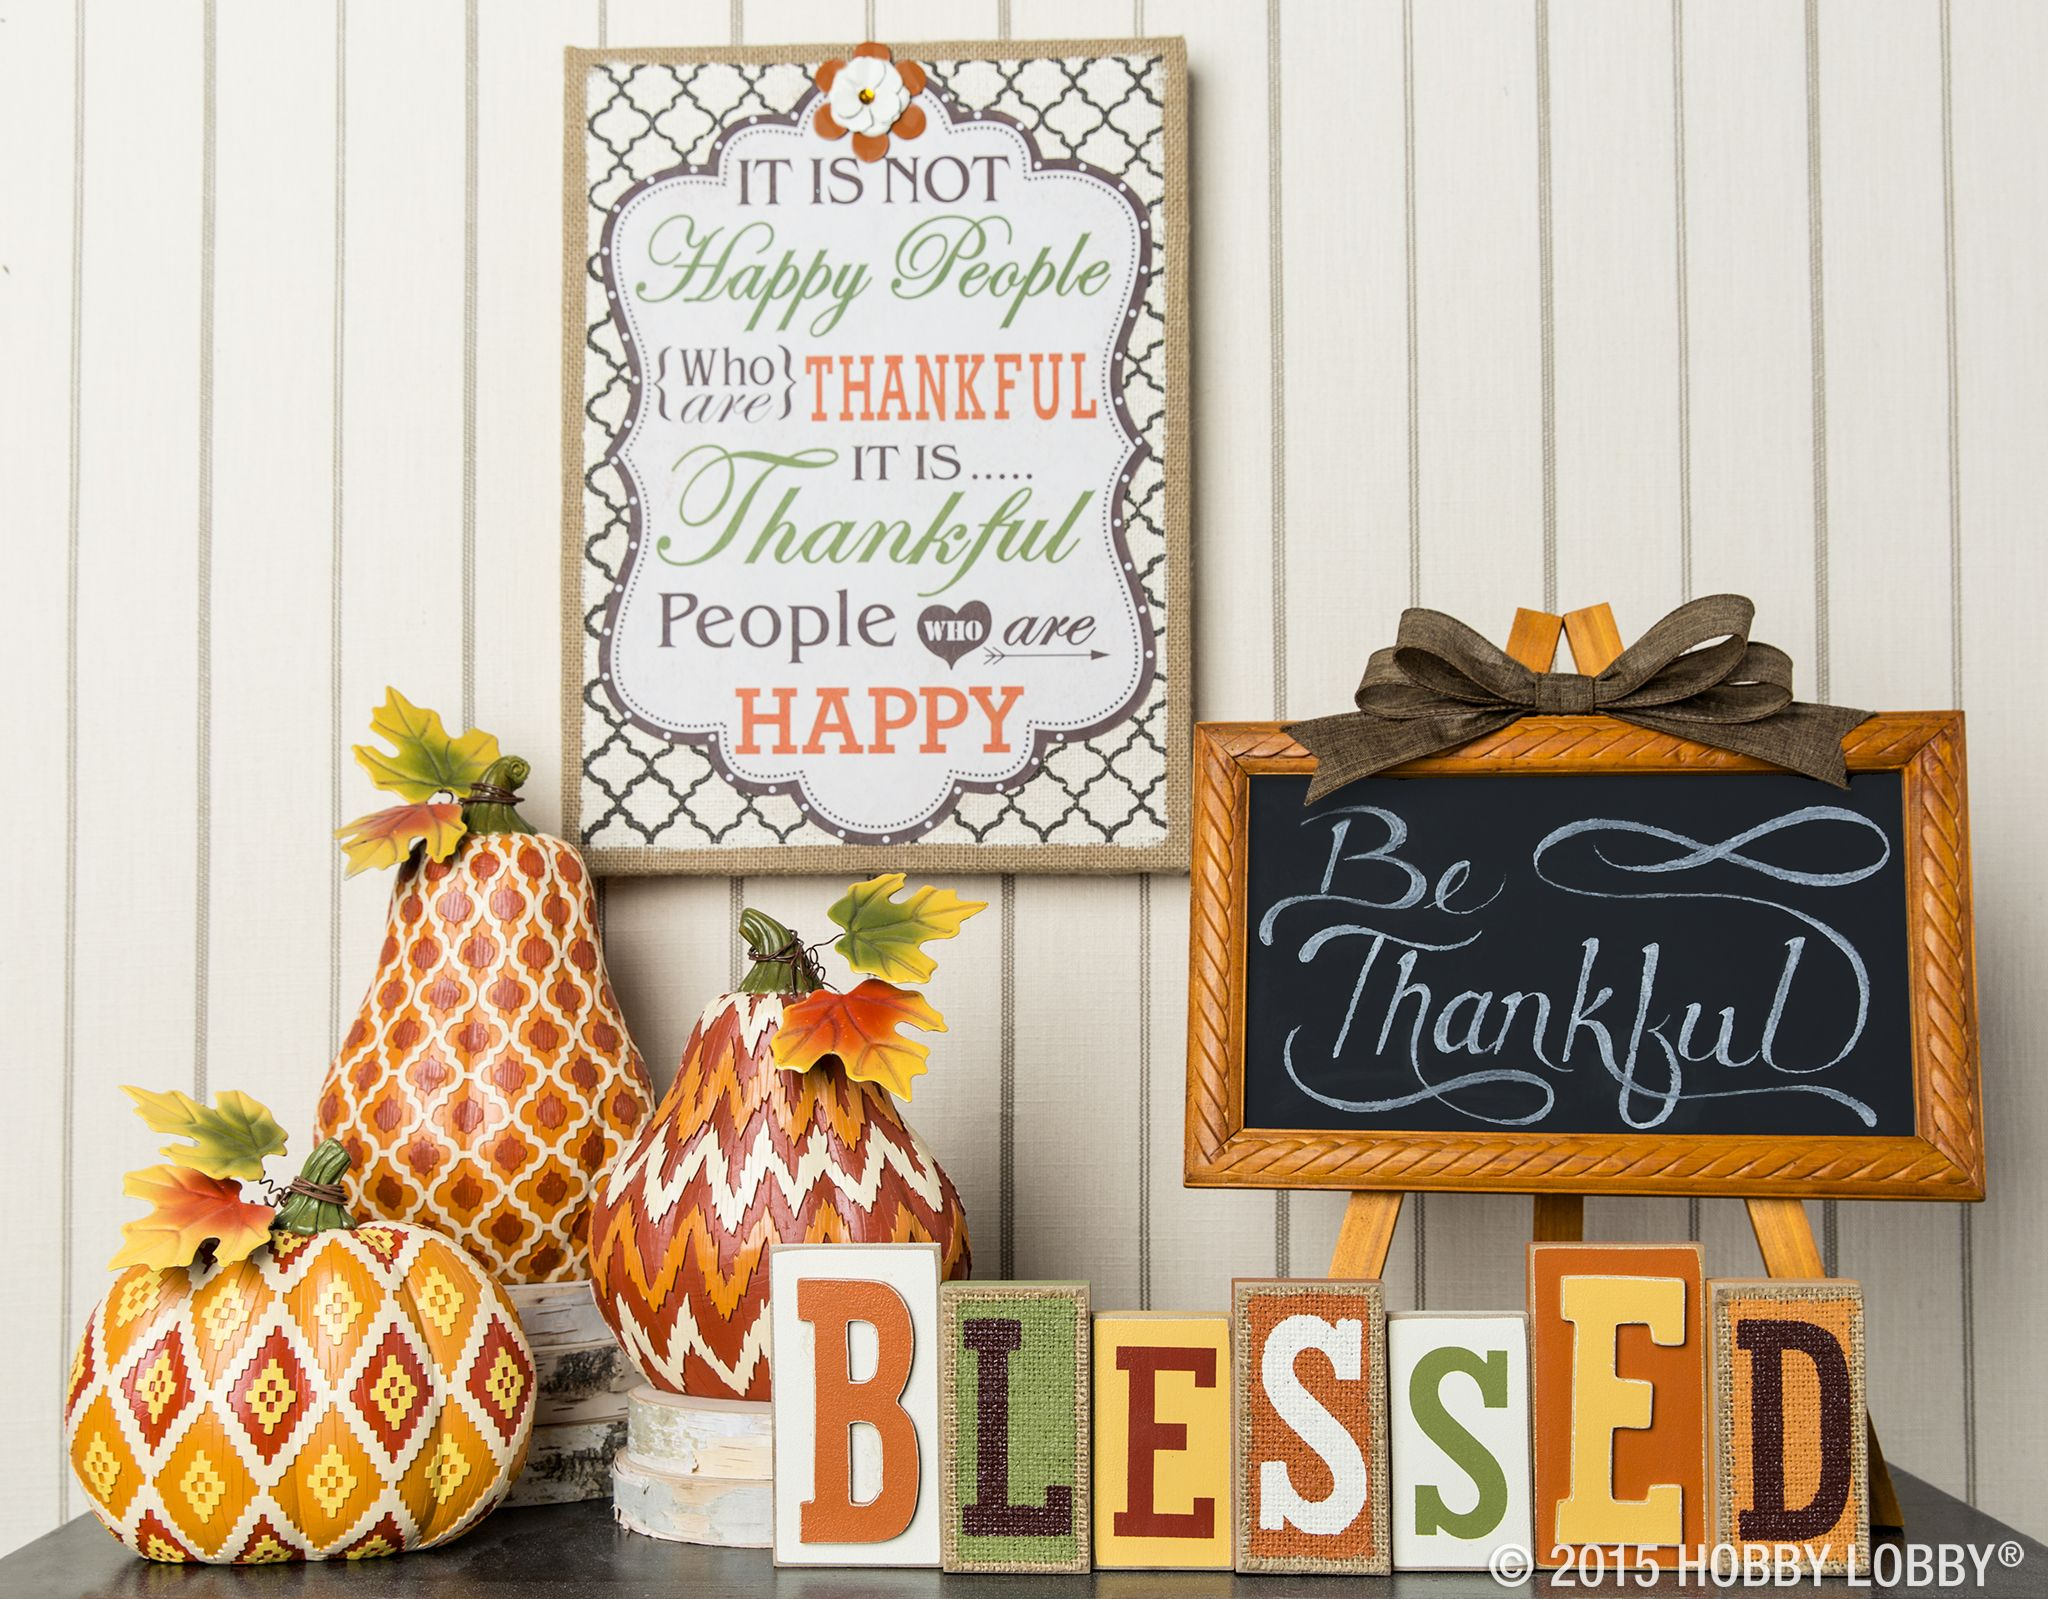 Wishing you a blessed and happy Thanksgiving! What are you thankful